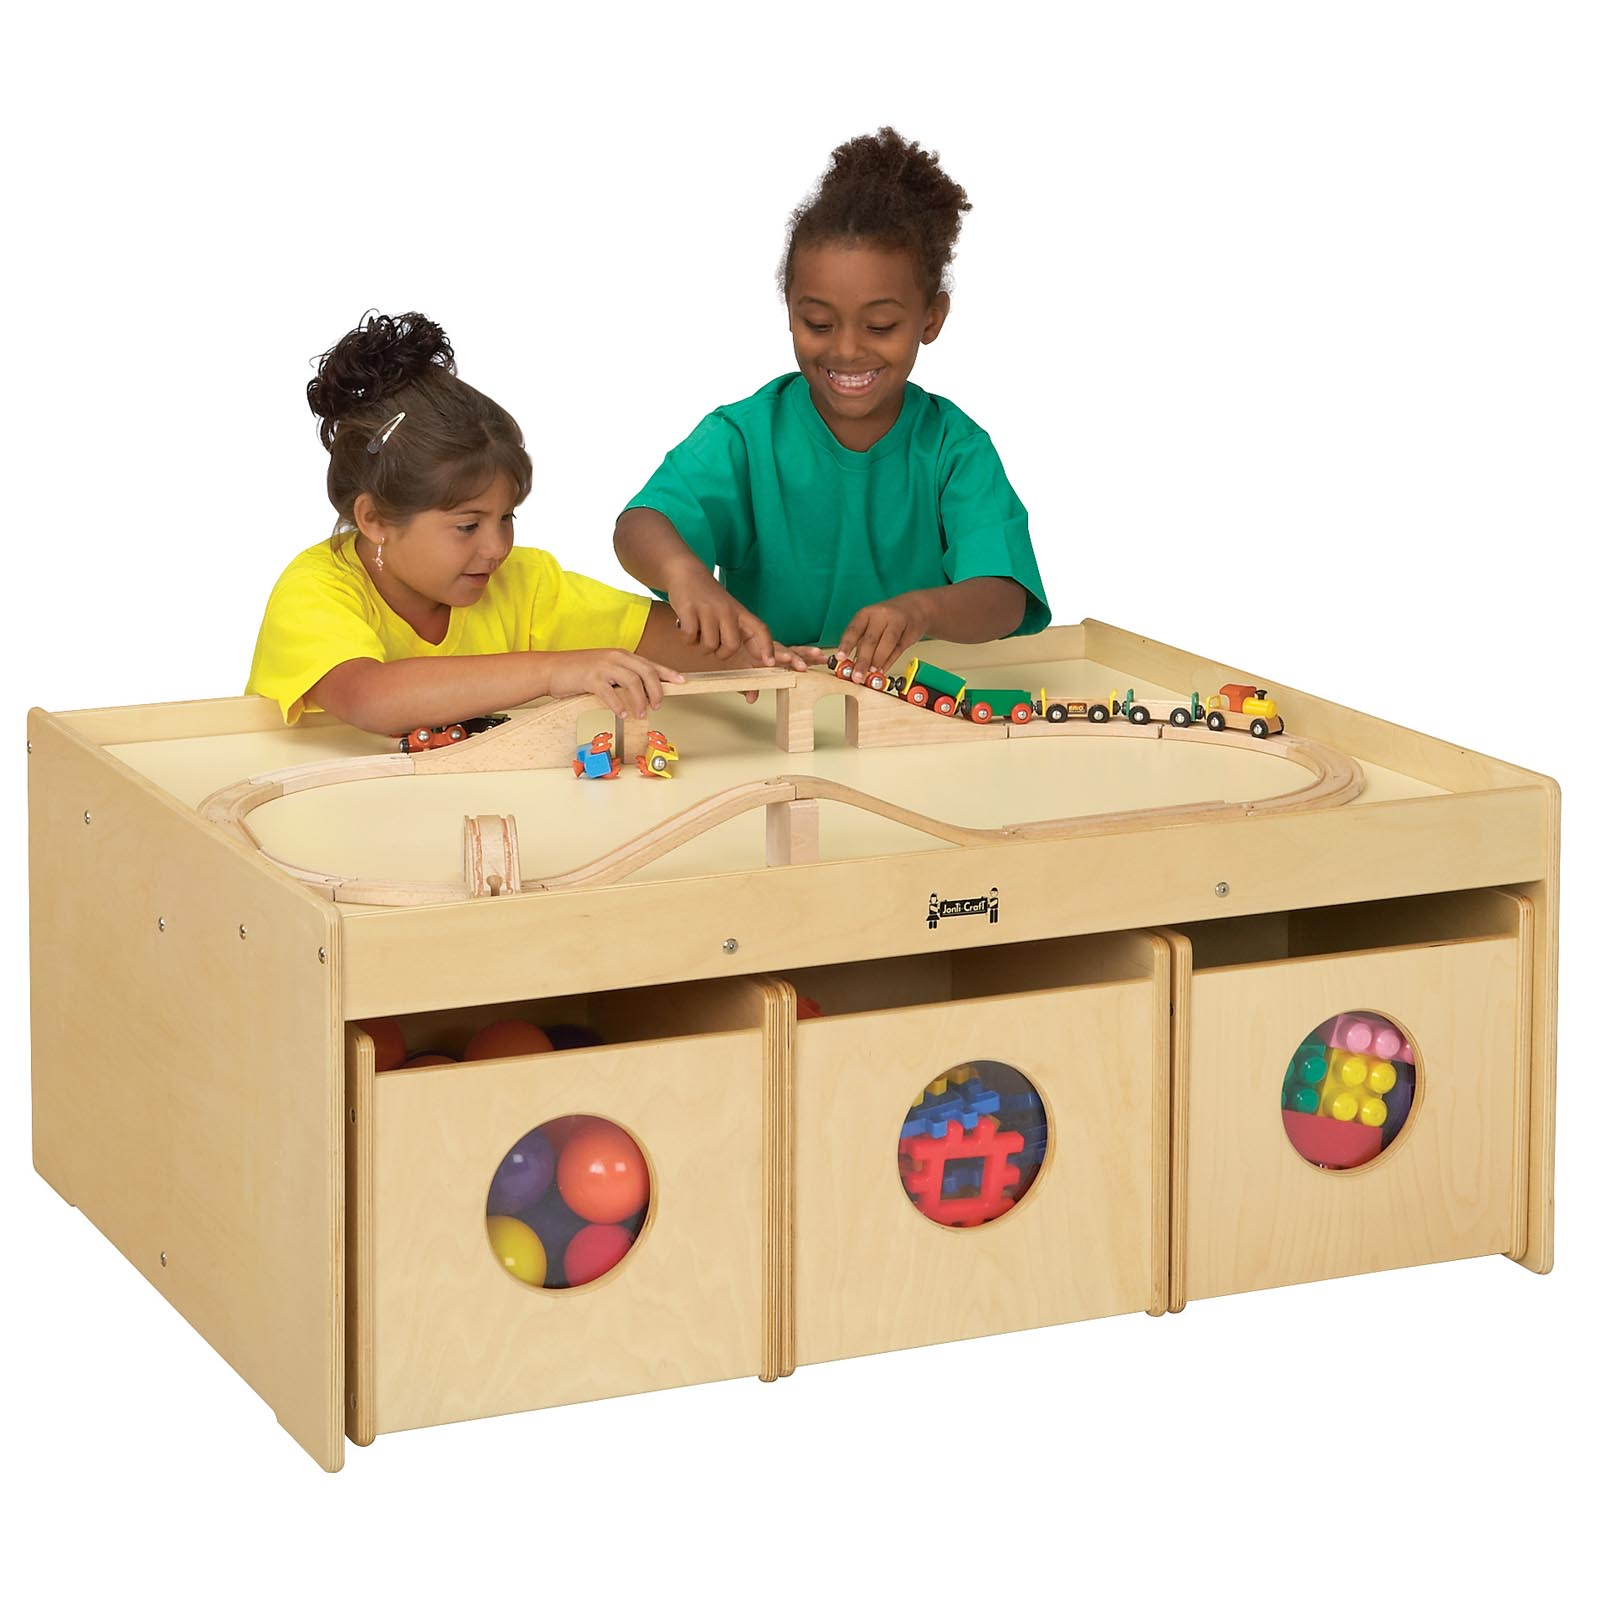 jonticraft kydz activity table with  bins  hayneedle -